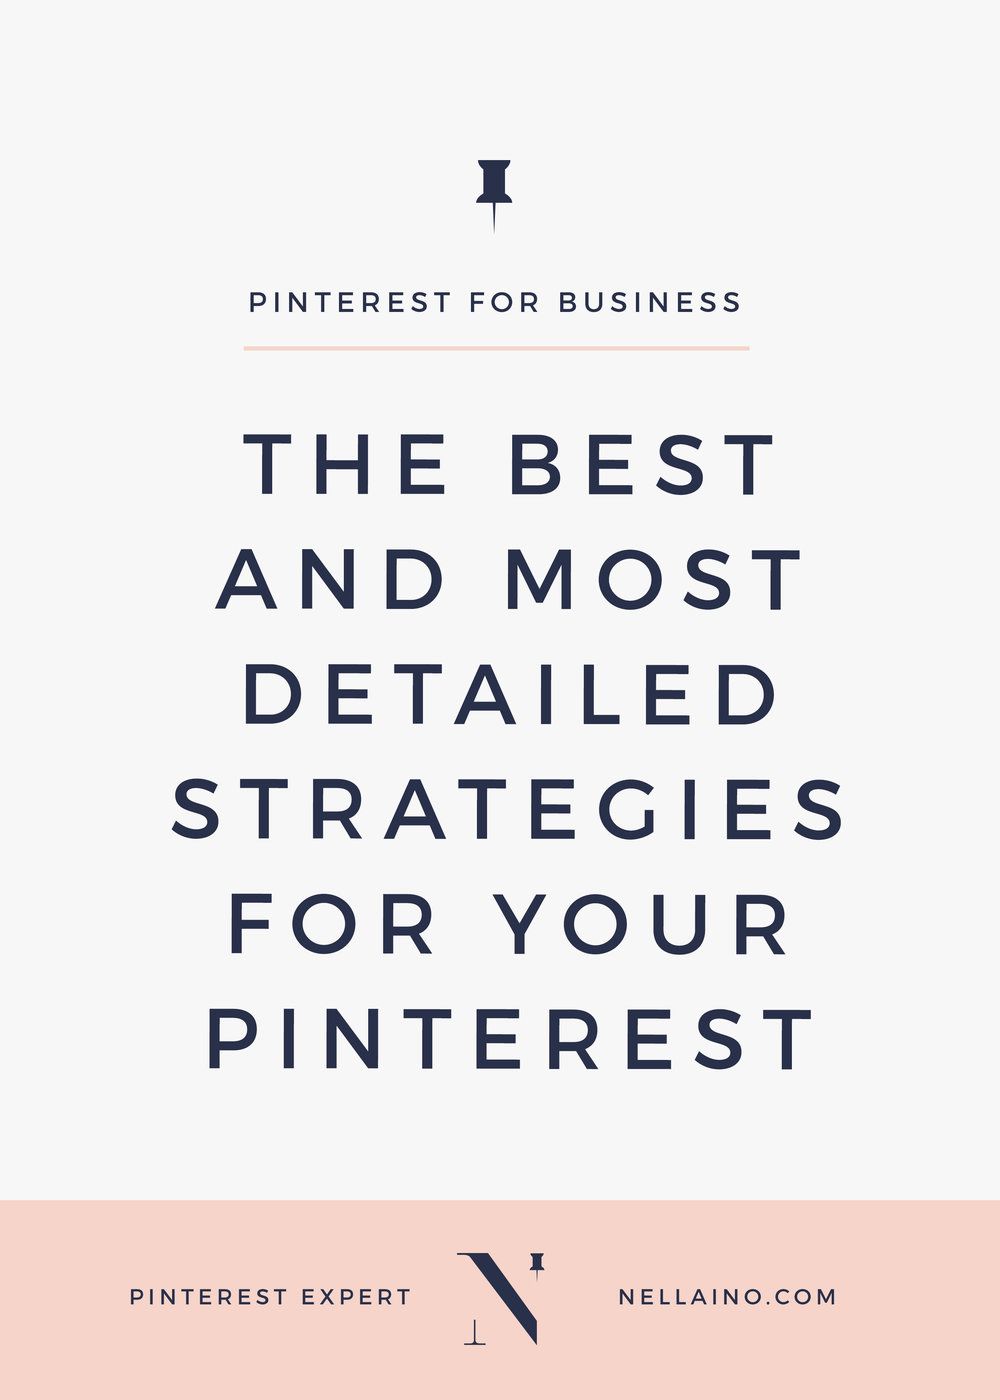 The best Pinterest strategies for small businesses via Nellaino